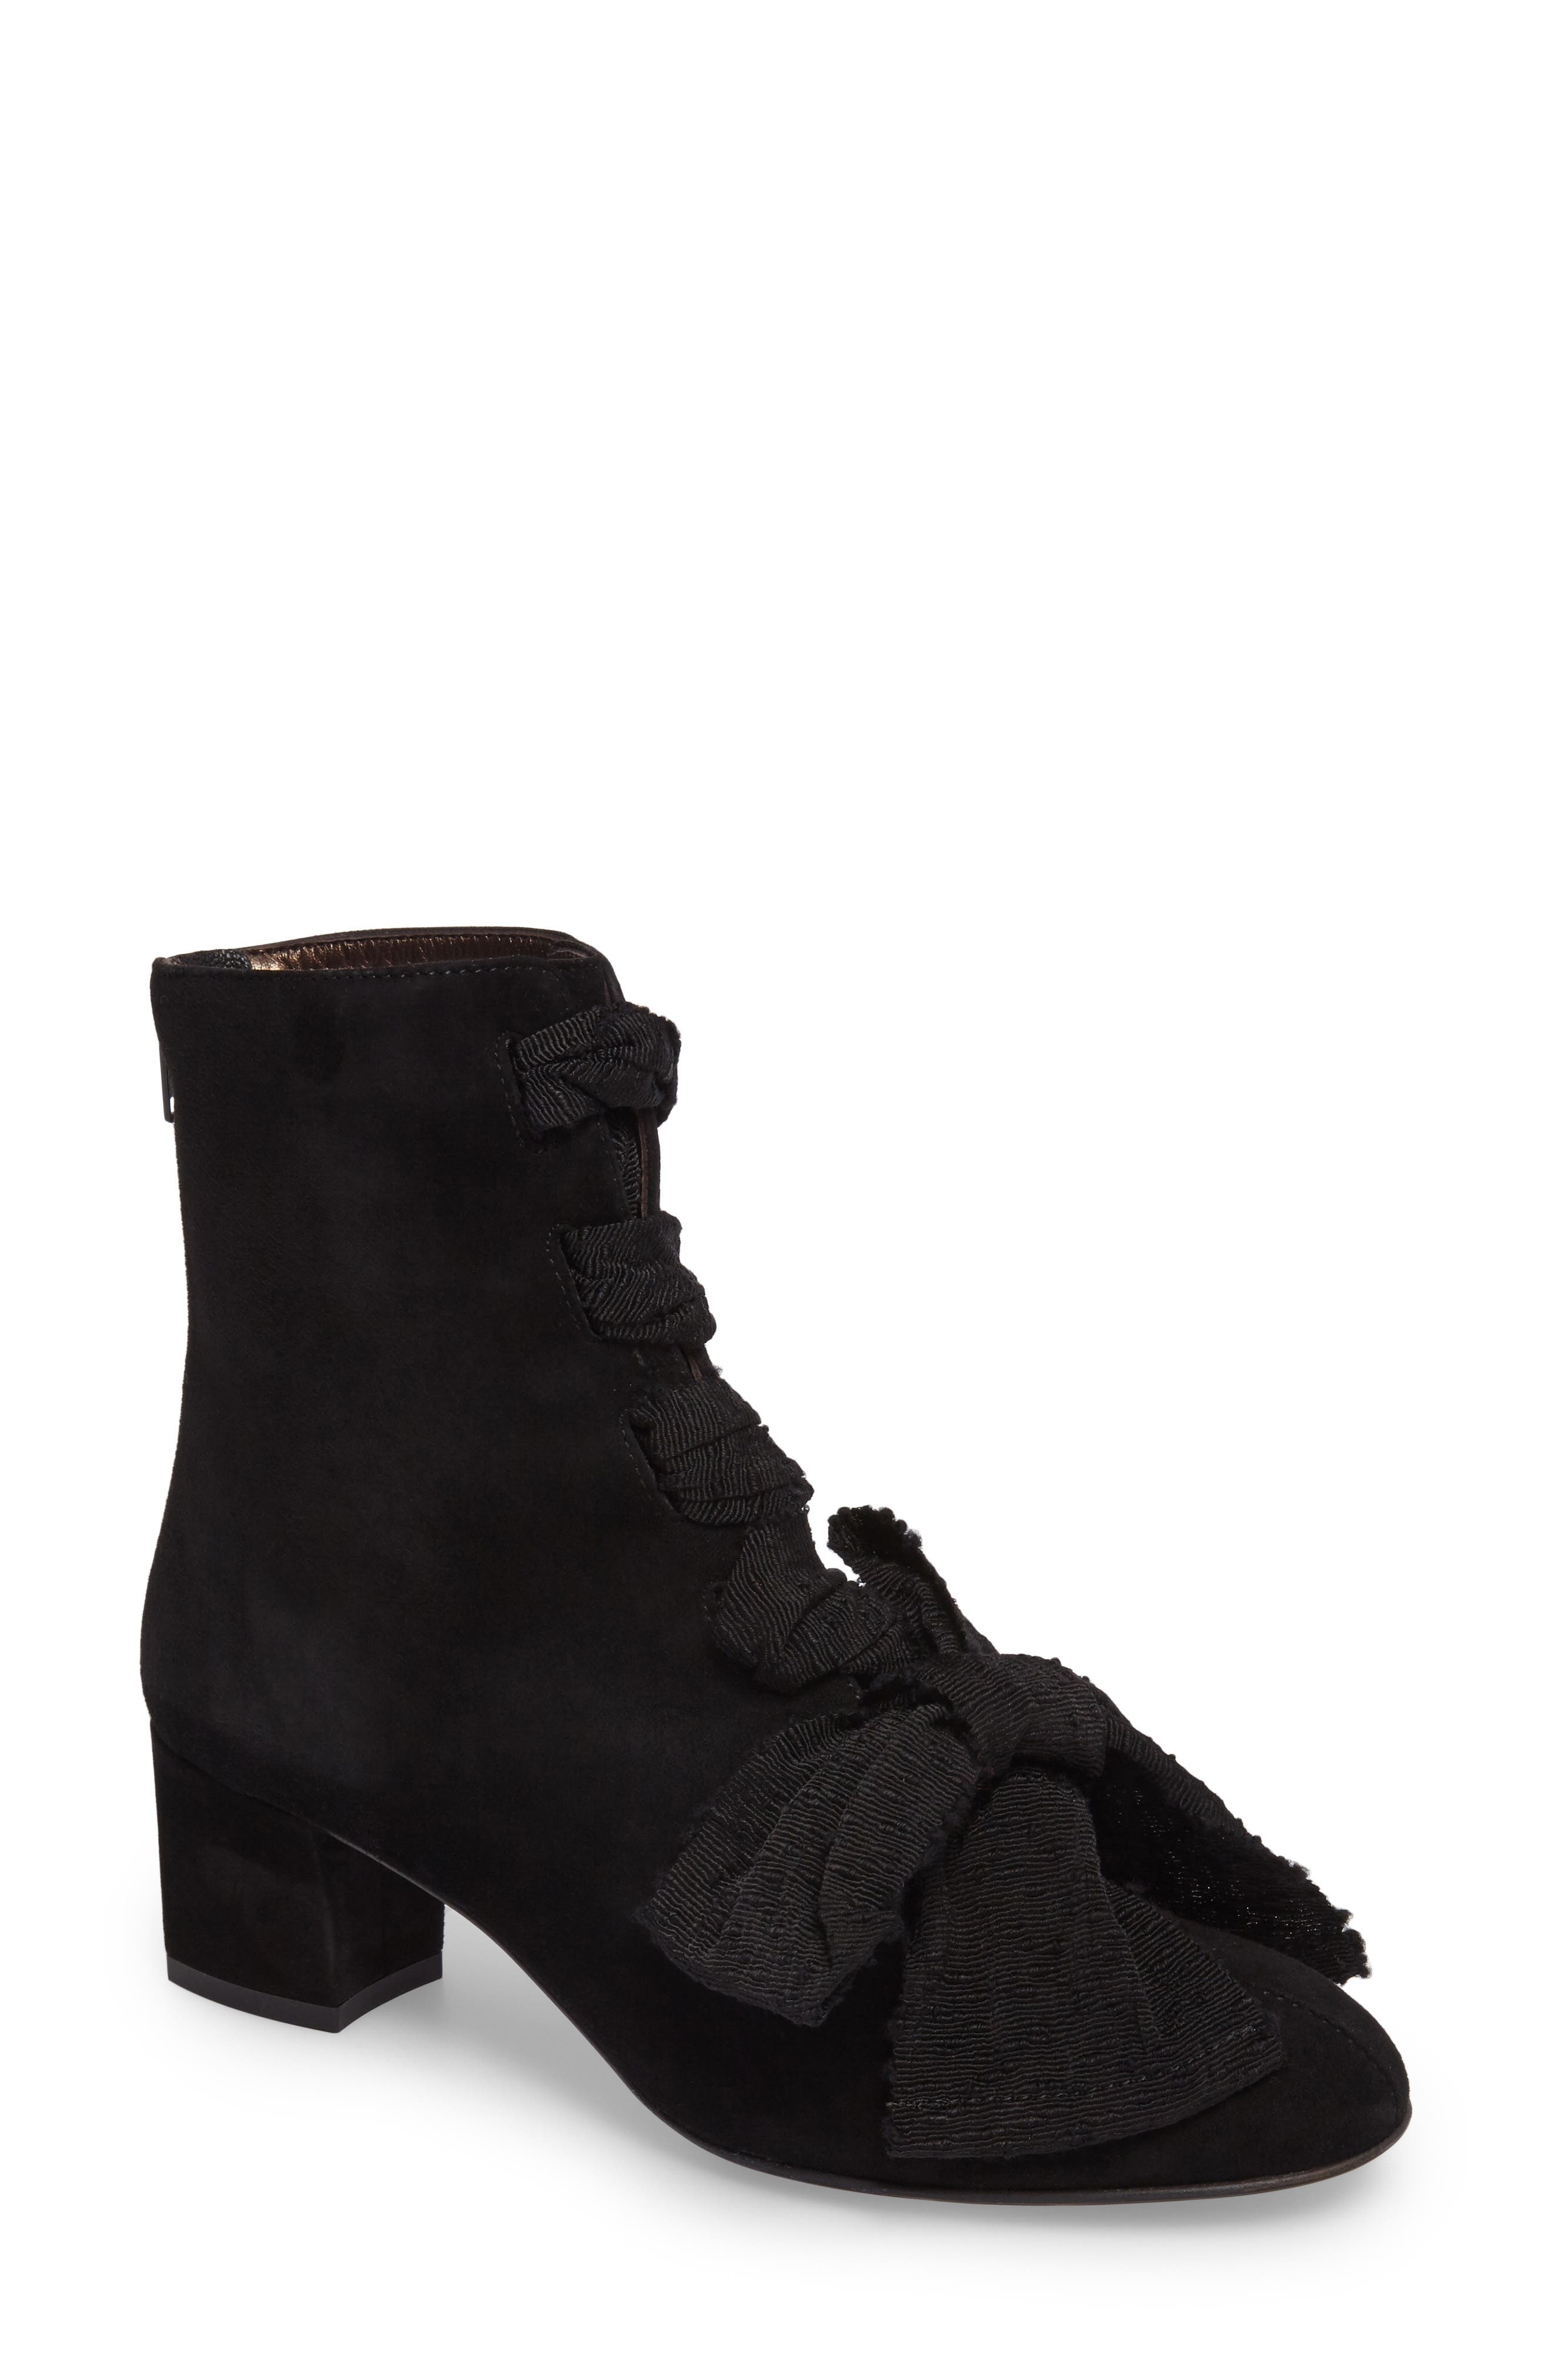 Alternate Image 1 Selected - AGL Bow Bootie (Women)